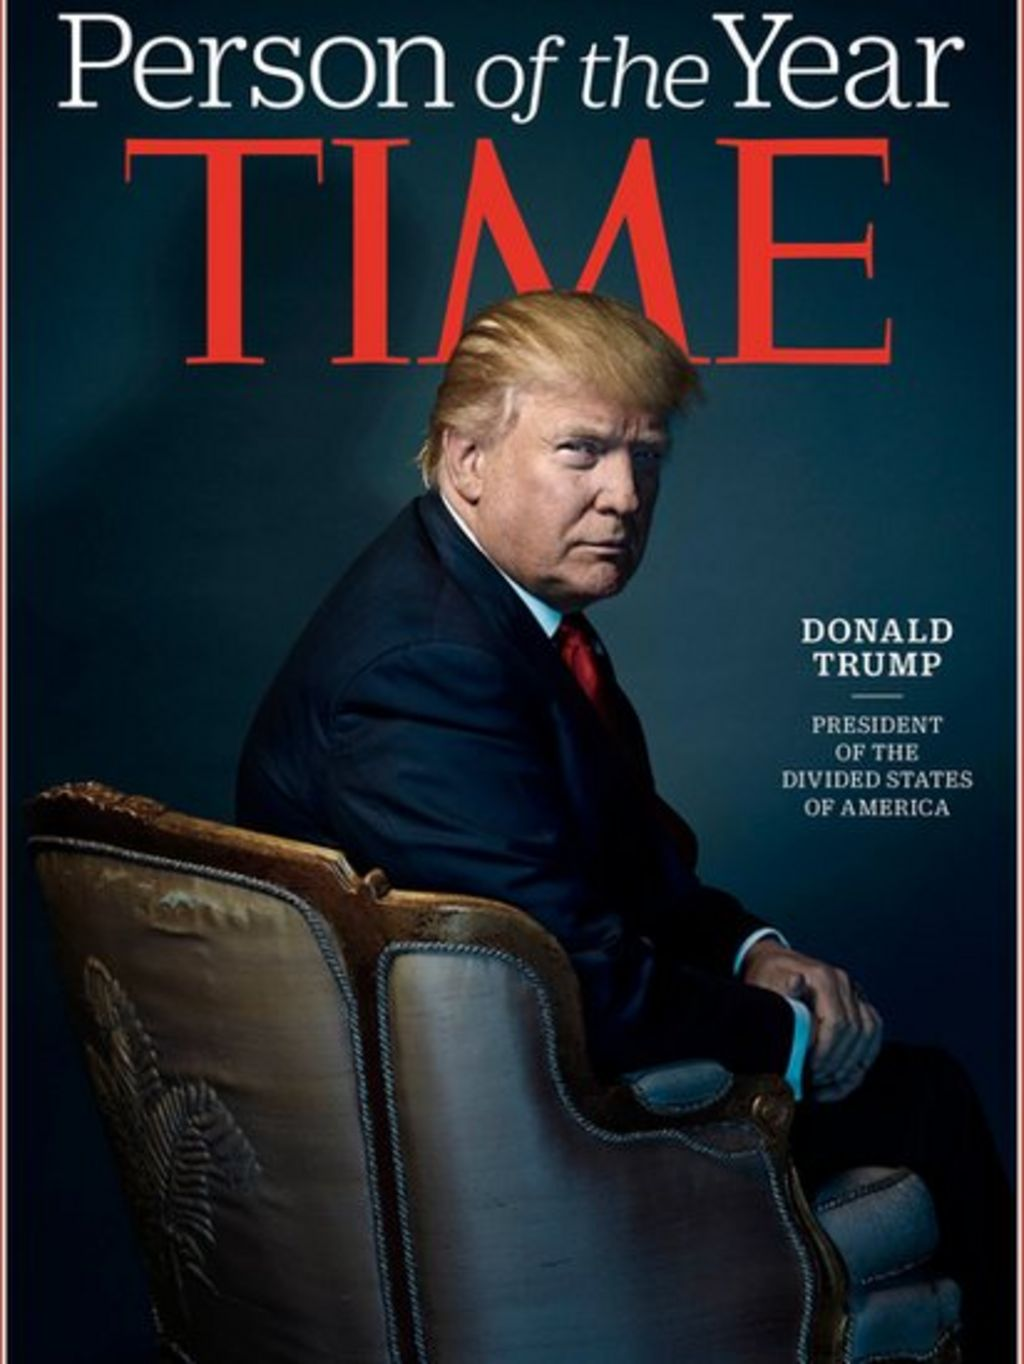 Donald Trump says he turned down Time's Person of the Year